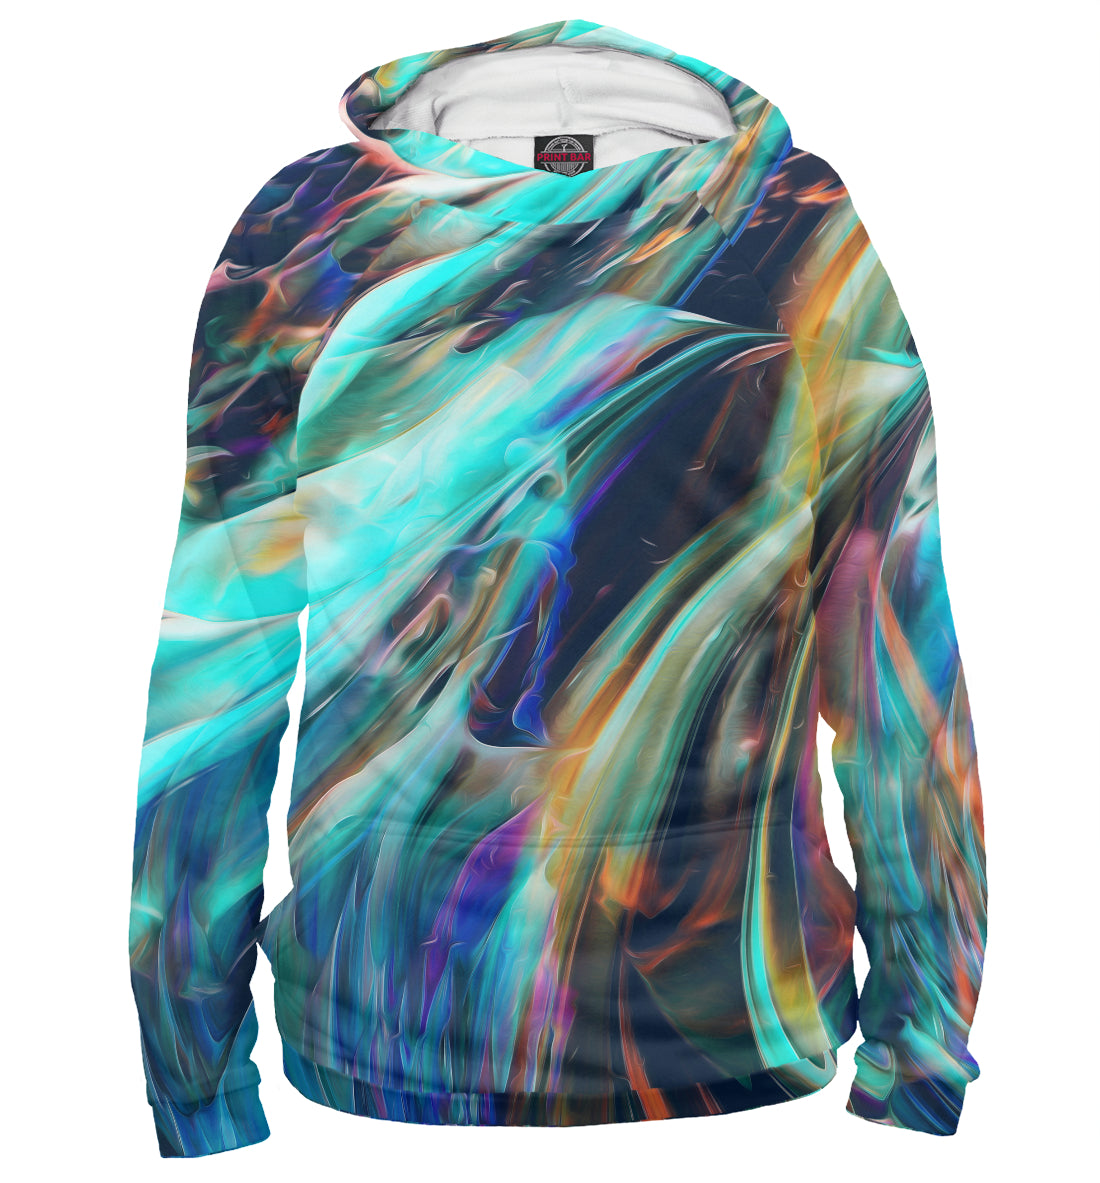 Hoody abstract waves | ABS-512858-hud